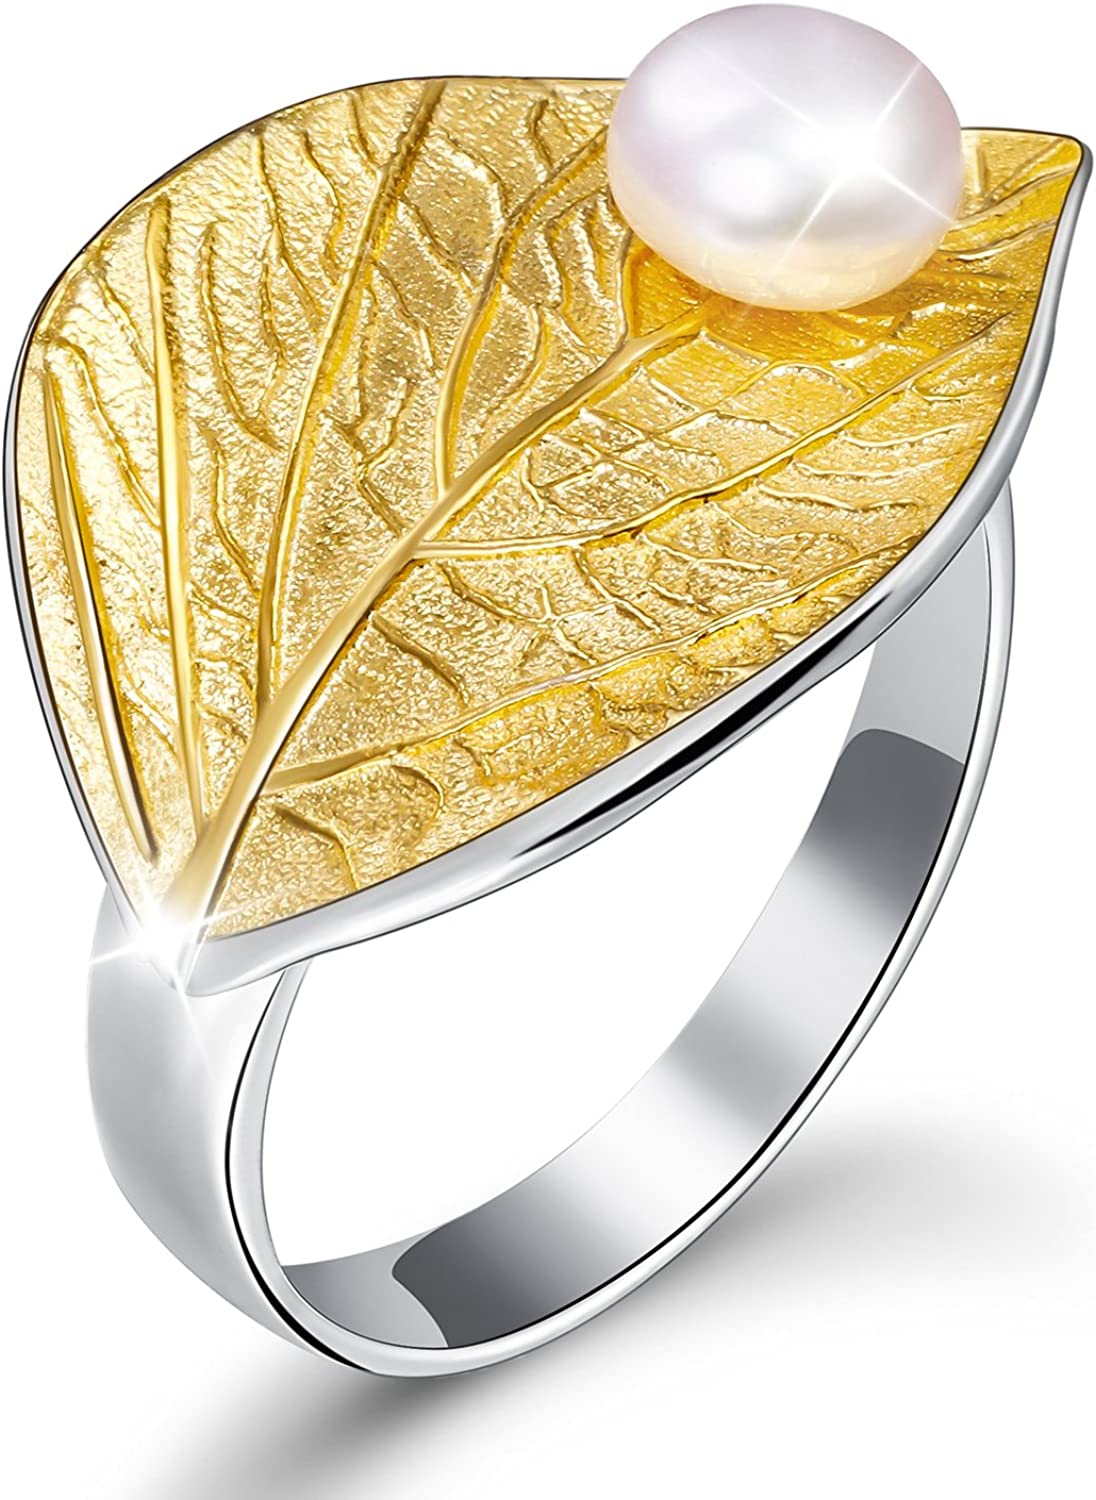 Lotus Fun 925 Sterling Silver Rings Leaf F with Ring Open Ranking TOP5 Now free shipping Autumn